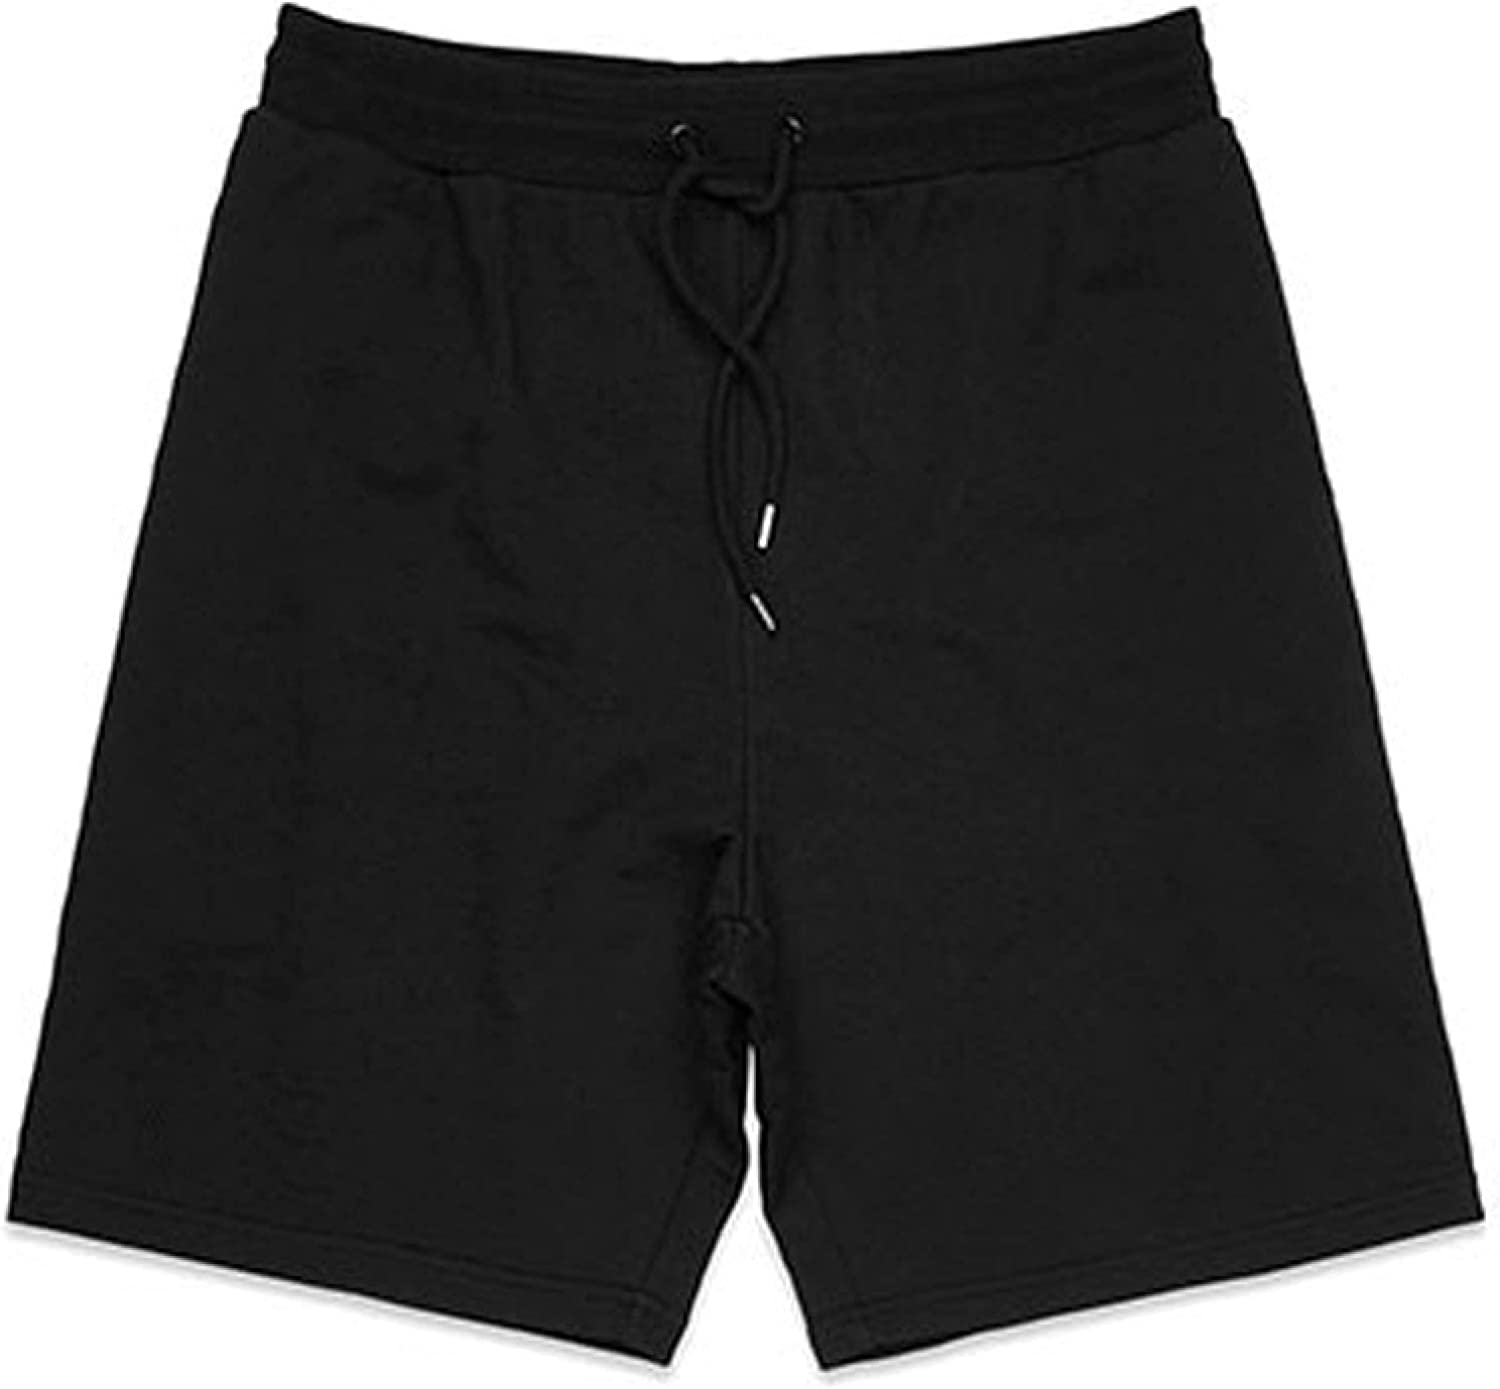 Segindy Men's Sports Casual Shorts Summer Fashion Solid Color Loose Comfortable Running